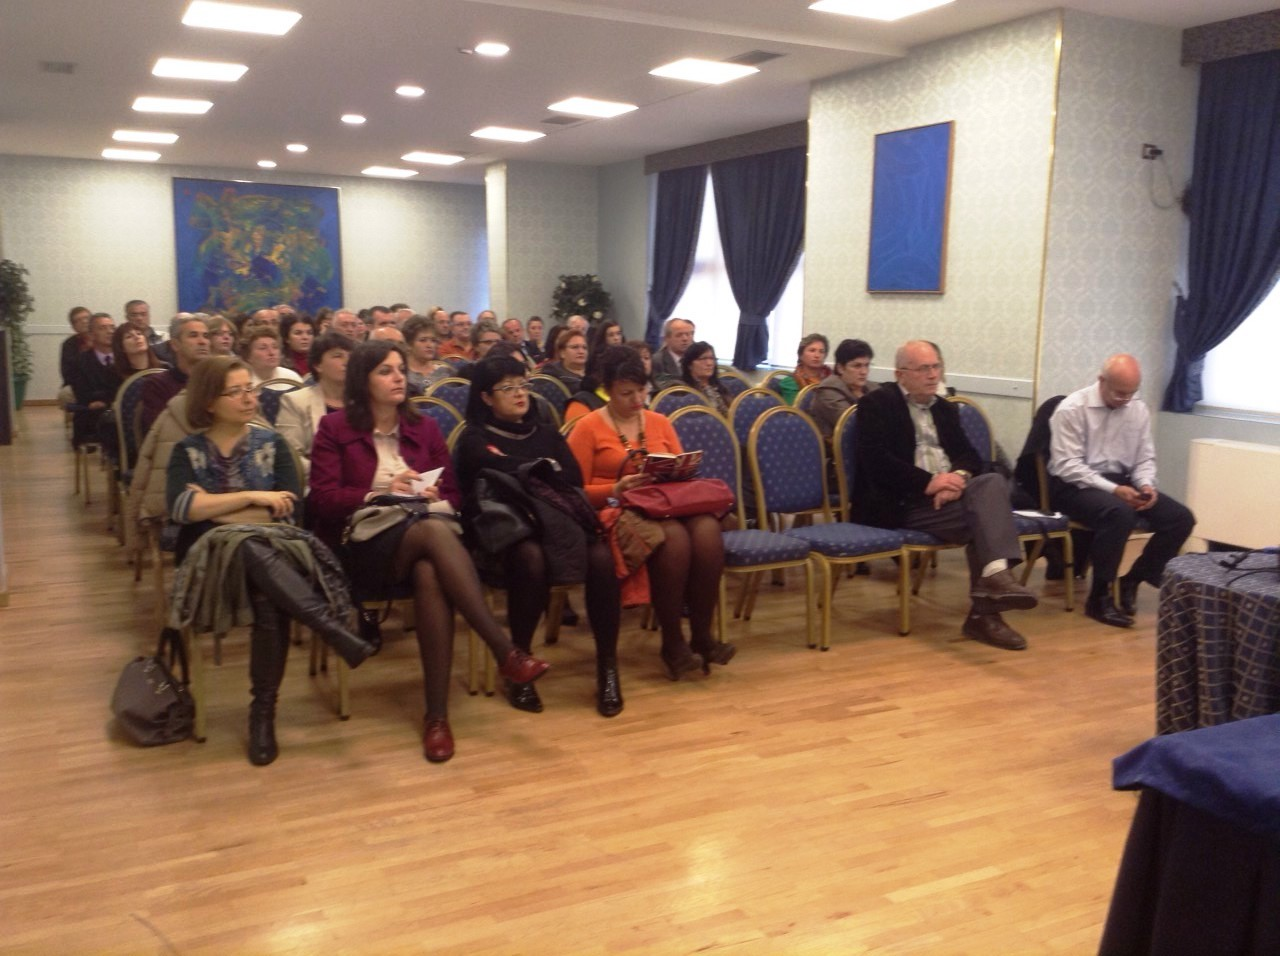 Albania, final meeting on the evaluation of the administration of multiple injectable vaccines in a single visit, 24 November 2015